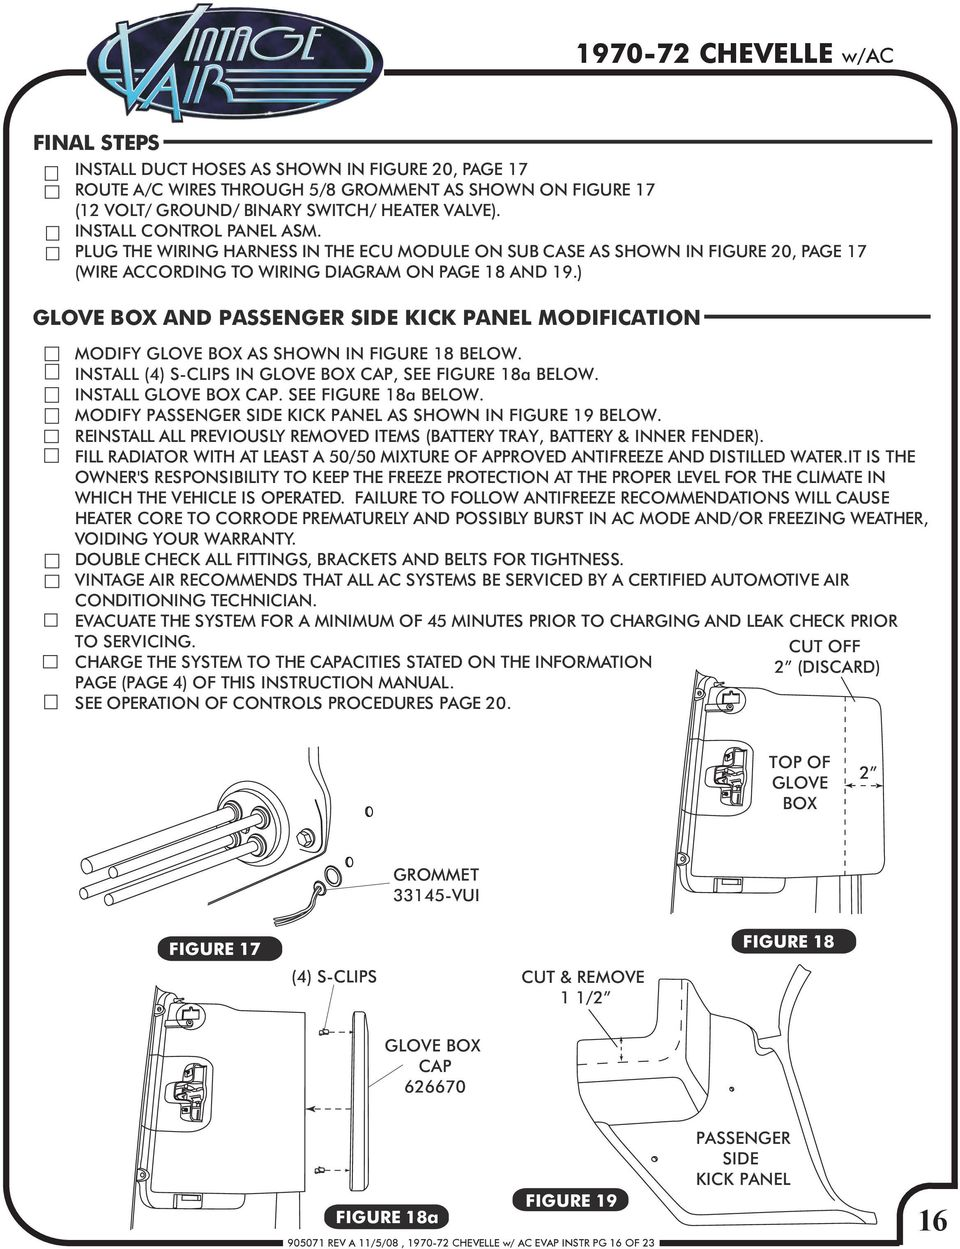 hight resolution of glove box and passenger side kick panel modification modify glove box as shown in figure